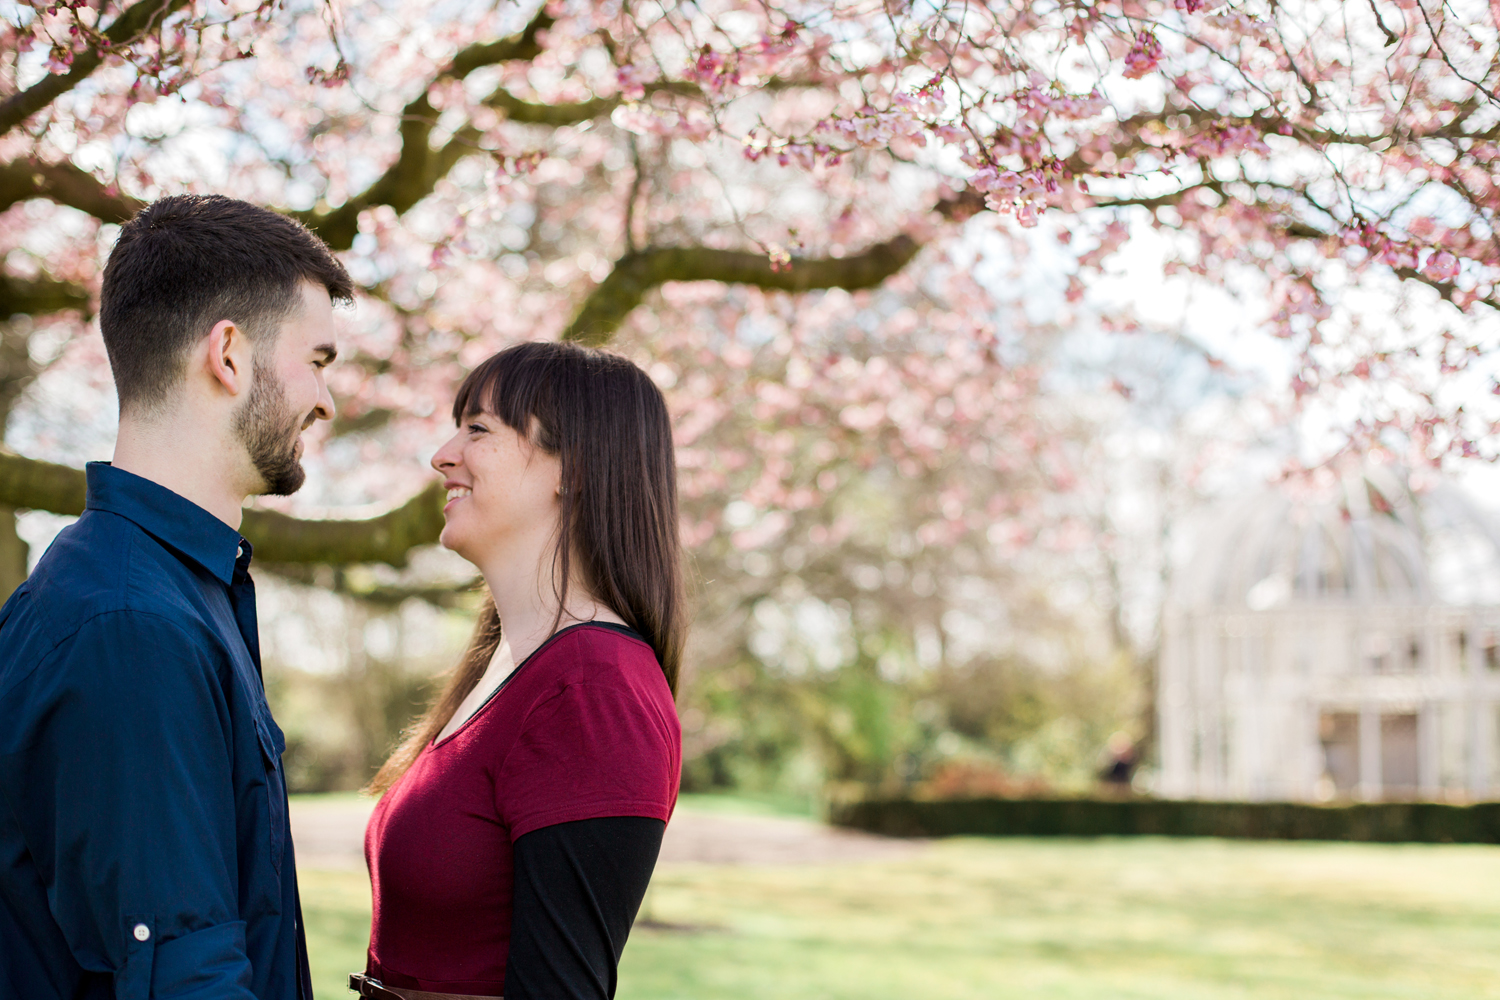 Sophie Evans Photography, Alice & Nathanael Botanical Gardens Engagement Shoot. Warwickshire Wedding Photographer (4).jpg